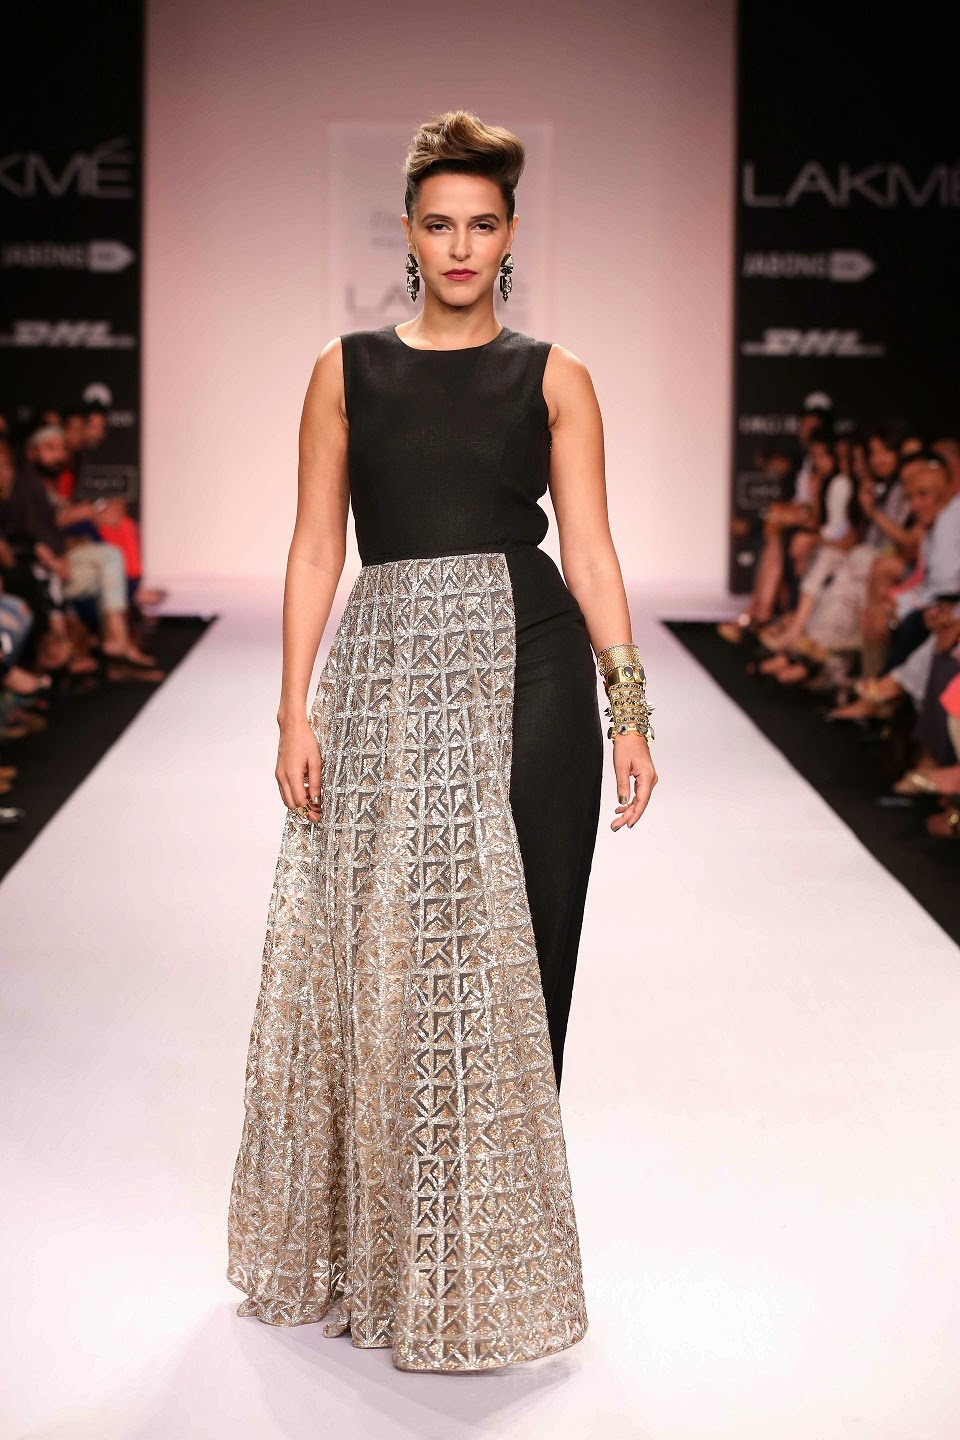 Lakme Fashion Week Purvi Doshi